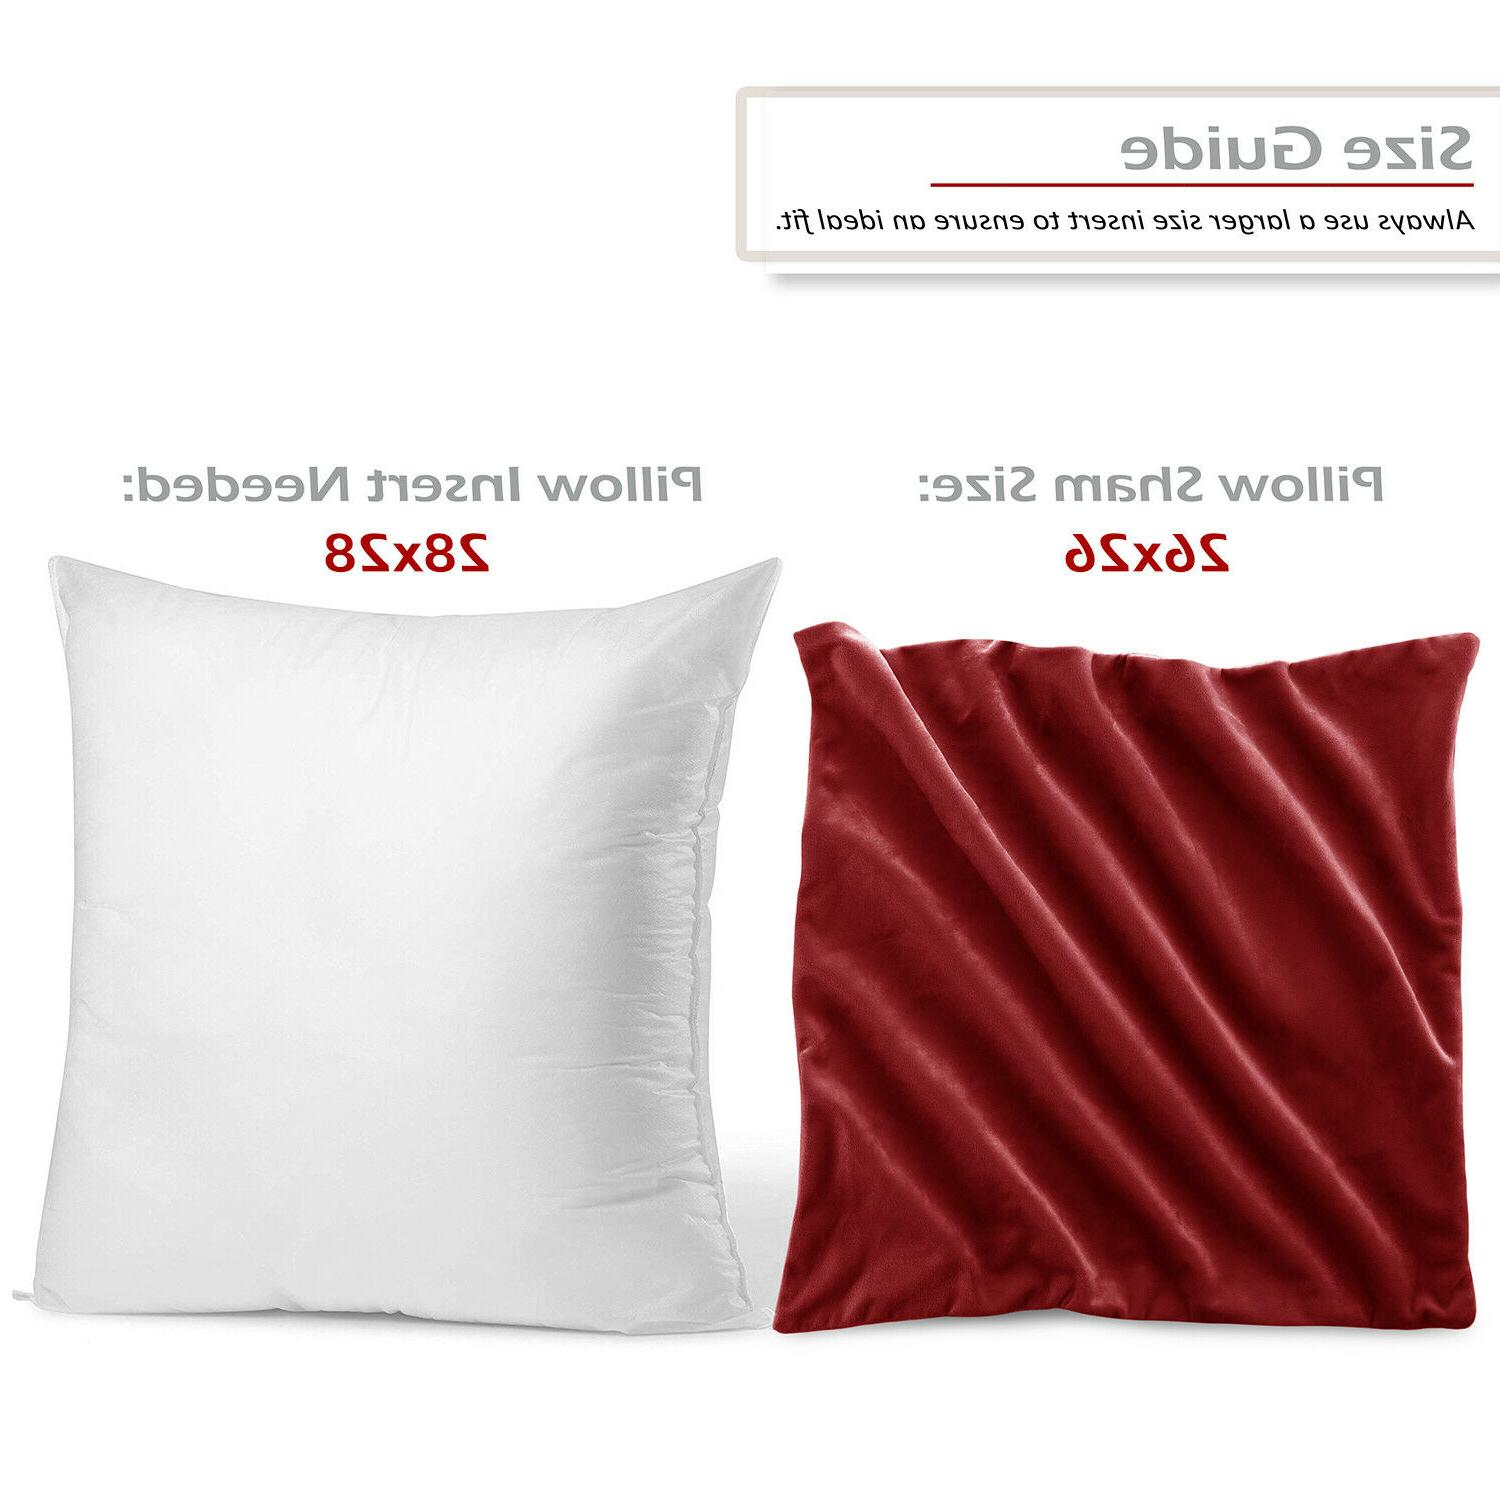 Throw Pillow Covers of Velvet Case Sizes 36 Colors!